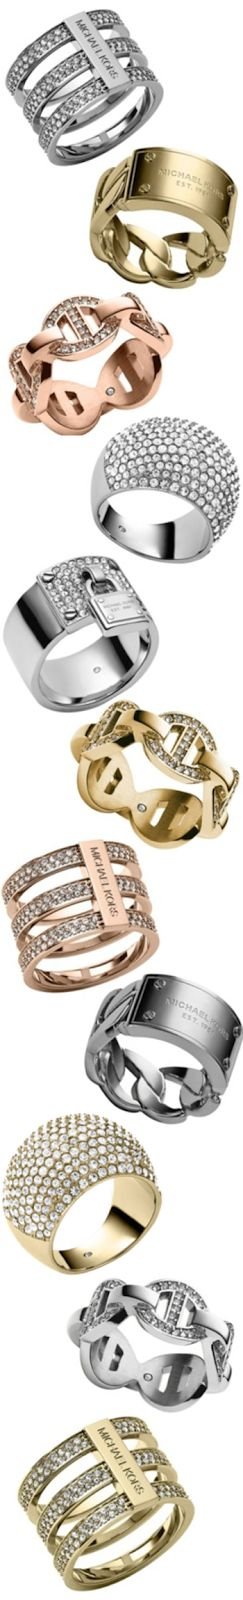 Michael Kors Assorted Rings | the House of Beccaria#